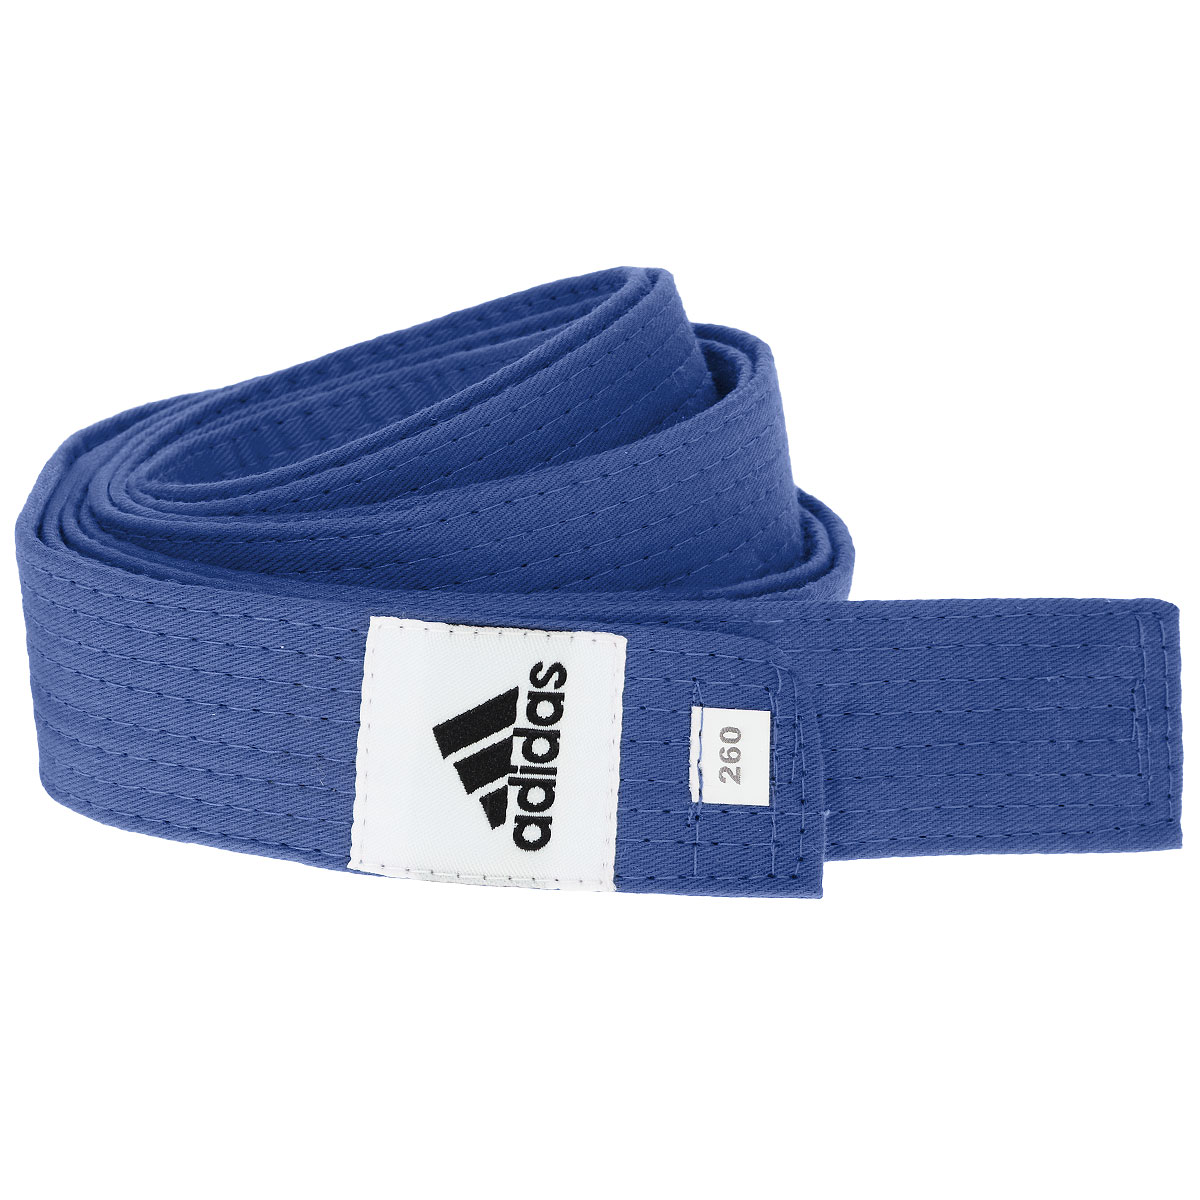 Пояс для единоборств adidas Club, цвет: синий. adiB220. Длина 280 см 10pcs lot high quality microfiber wet mopping cloths for irobot braava 321 380 320 380t mint 5200c 5200 4200 4205 robot